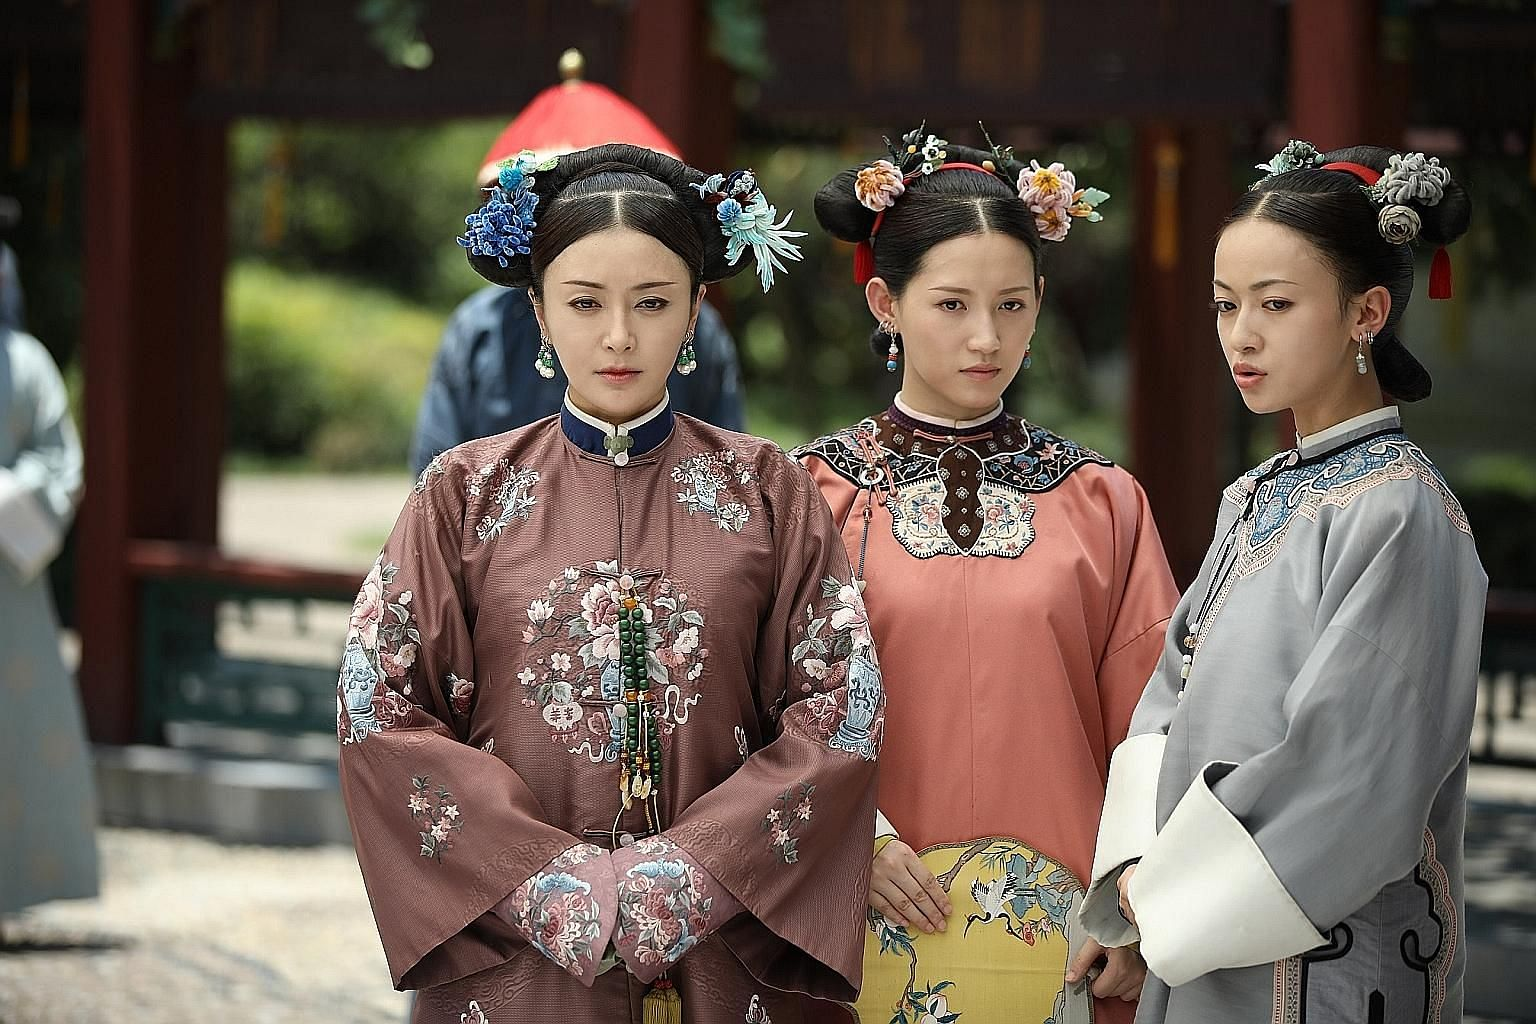 Elegant outfits and refined accessories in Story Of Yanxi Palace, starring (from far left) Qin Lan, Su Qing and Wu Jinyan.